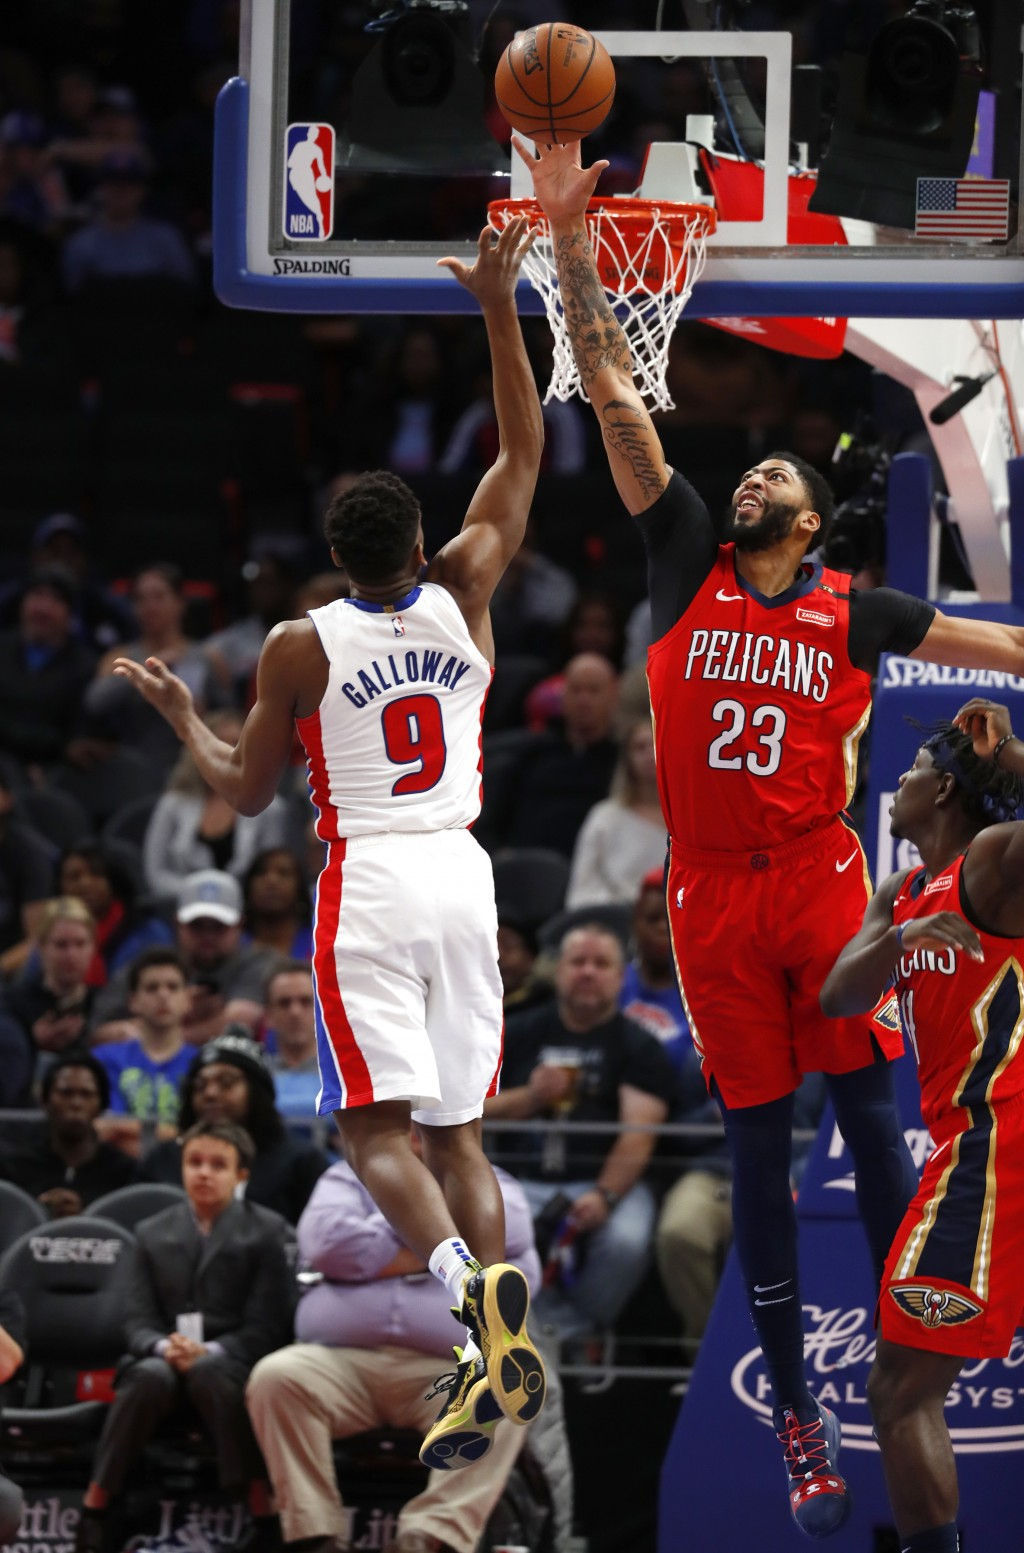 New Orleans Pelicans forward Anthony Davis (23) blocks a shot byDetroit Pistons guard Langston Galloway (9) in the second half of an NBA basketball ga